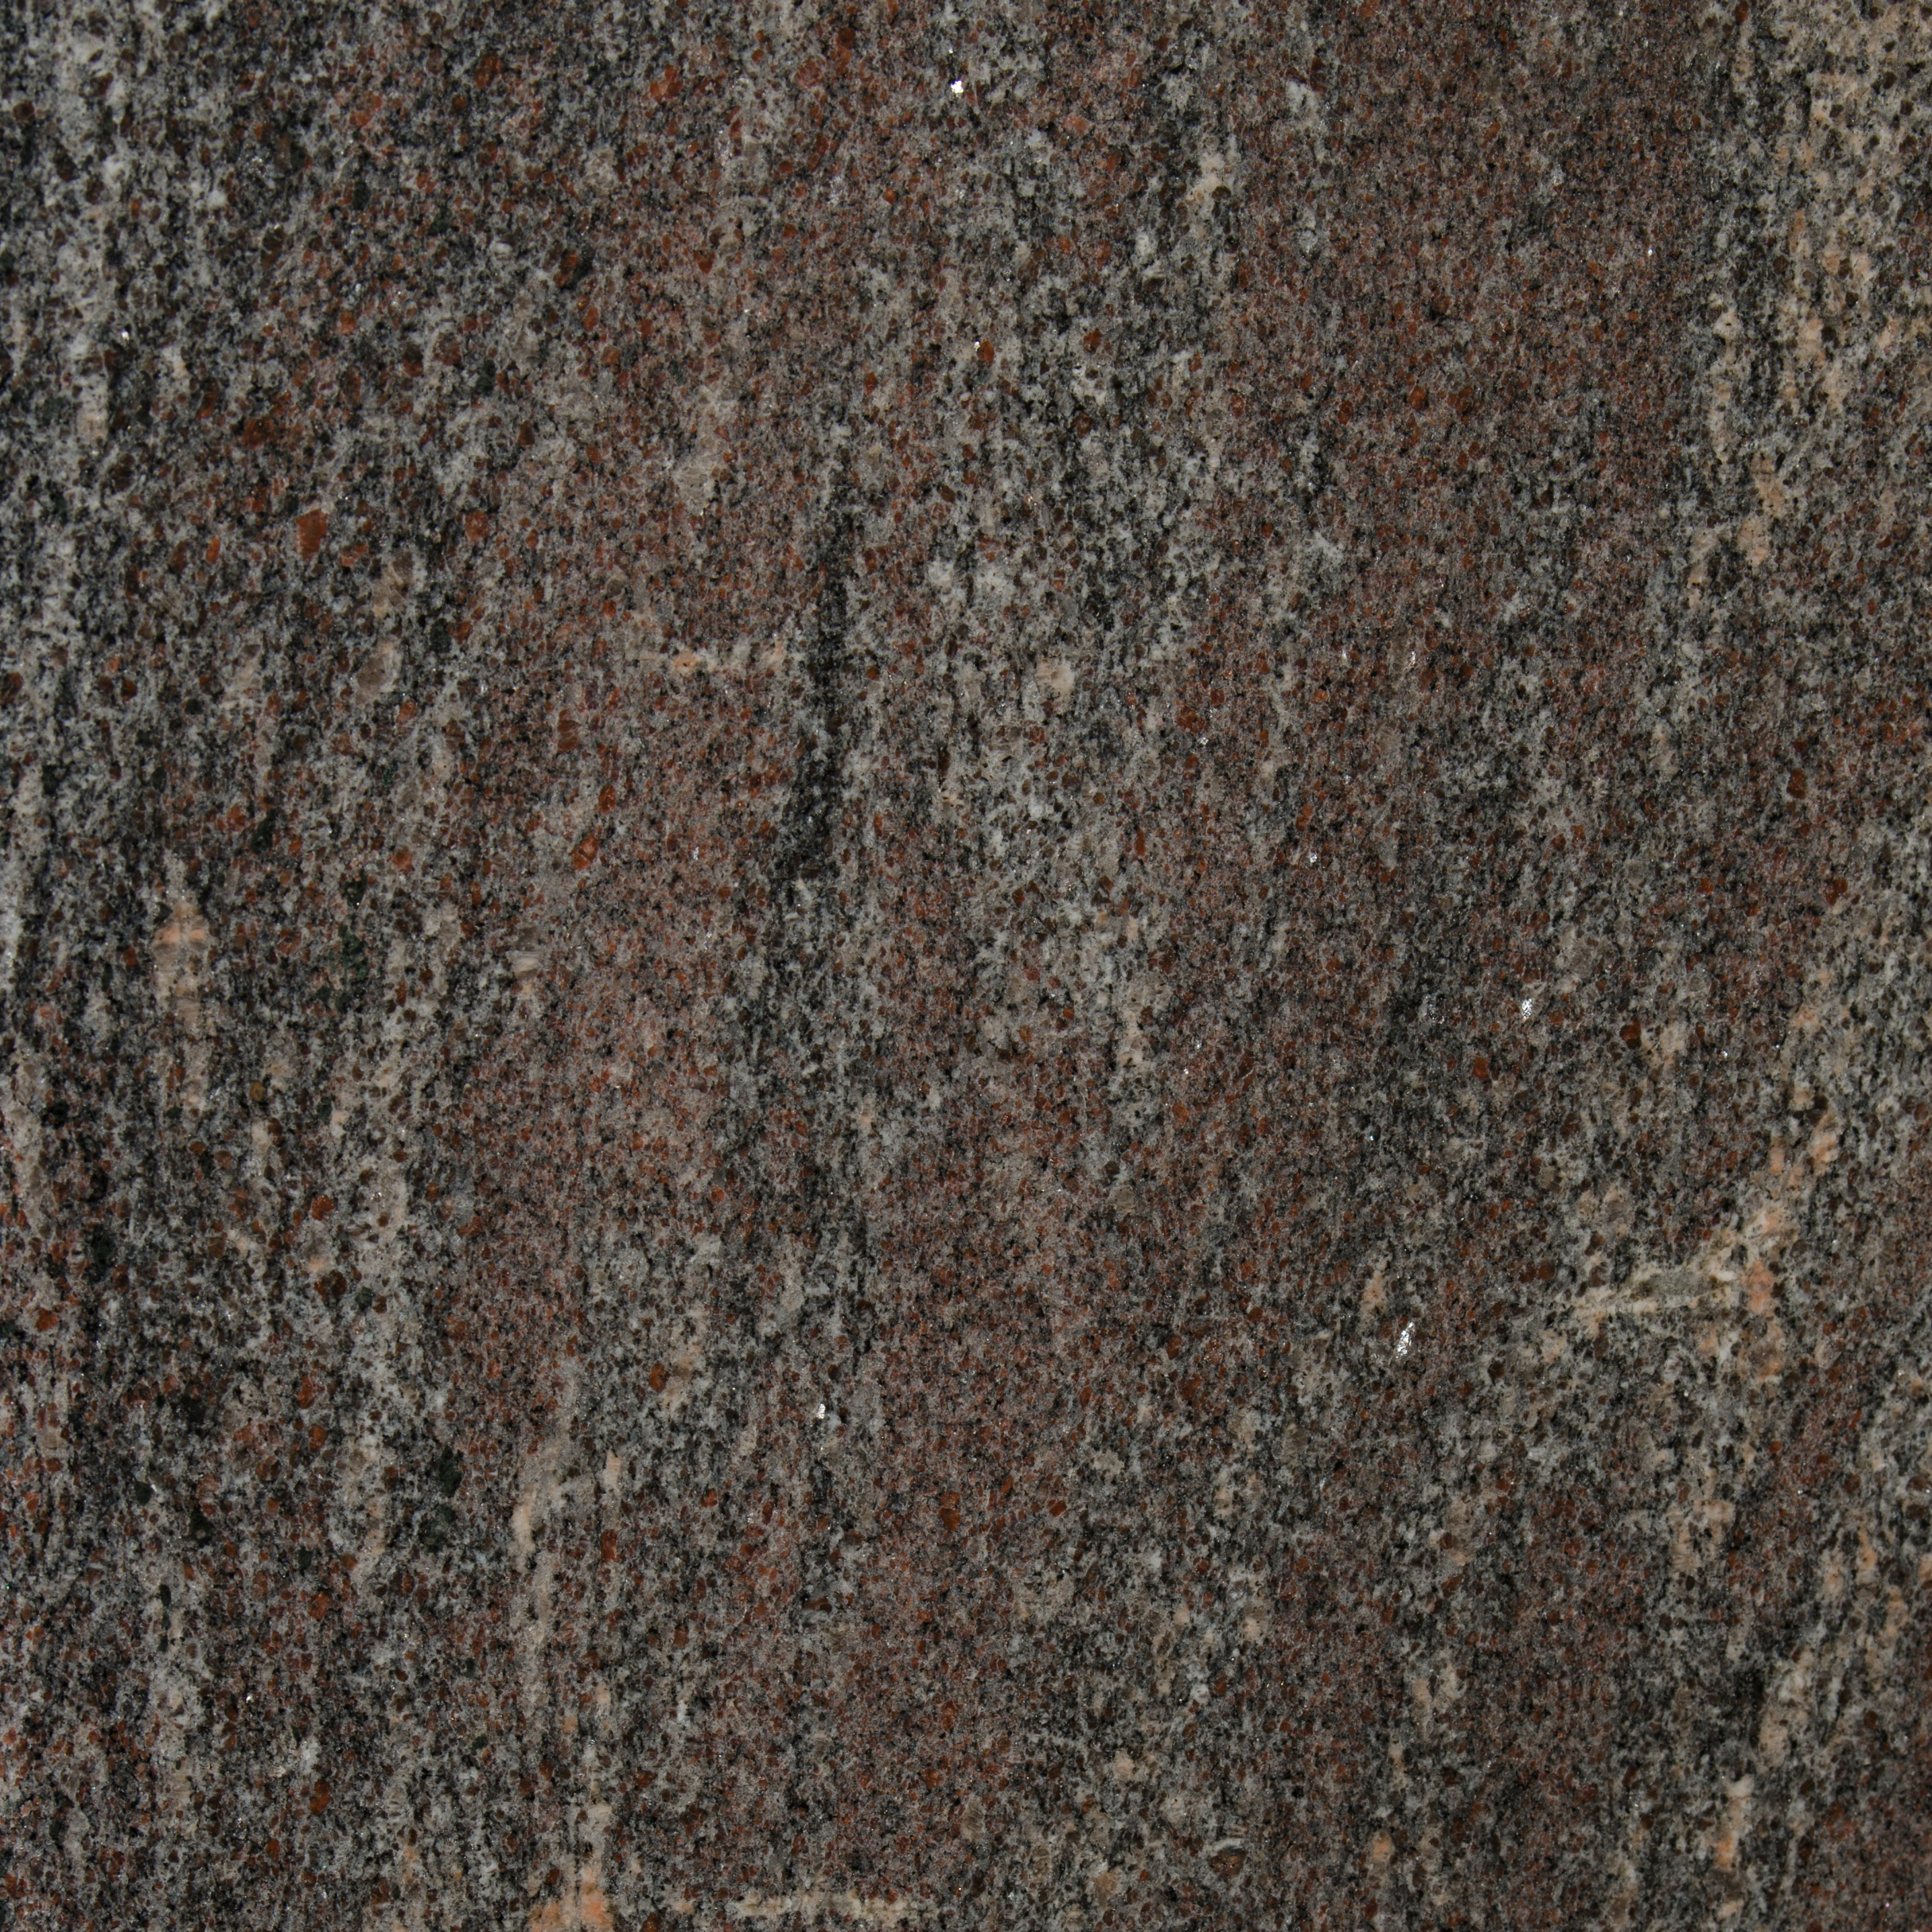 Paradiso Granite Countertops Beaverton Or Granite Countertops Portland Oregon Granite